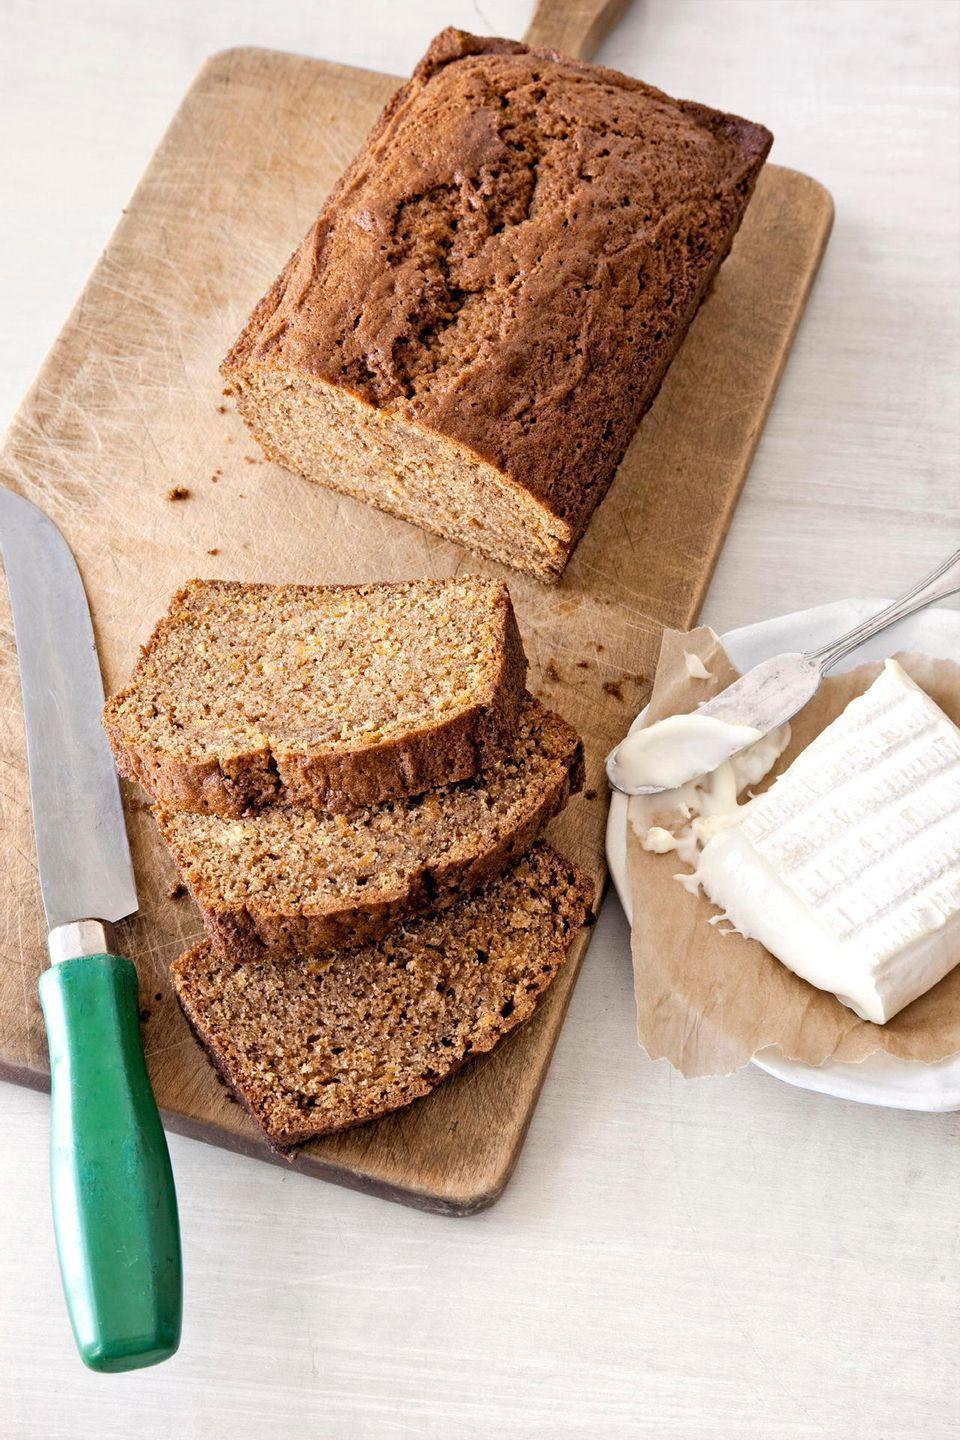 """<p>Try this moist bread with butter or a mild cheese—or dip it in pumpkin soup for an extra hearty experience.</p><p><strong><a href=""""https://www.countryliving.com/food-drinks/recipes/a2993/pumpkin-bread-recipe/"""" rel=""""nofollow noopener"""" target=""""_blank"""" data-ylk=""""slk:Get the recipe"""" class=""""link rapid-noclick-resp"""">Get the recipe</a>.</strong></p><p><strong>RELATED: <a href=""""https://www.countryliving.com/food-drinks/g619/our-best-pumpkin-recipes-1008/#slide-1"""" rel=""""nofollow noopener"""" target=""""_blank"""" data-ylk=""""slk:Best Savory Pumpkin Recipes"""" class=""""link rapid-noclick-resp"""">Best Savory Pumpkin Recipes</a></strong></p>"""